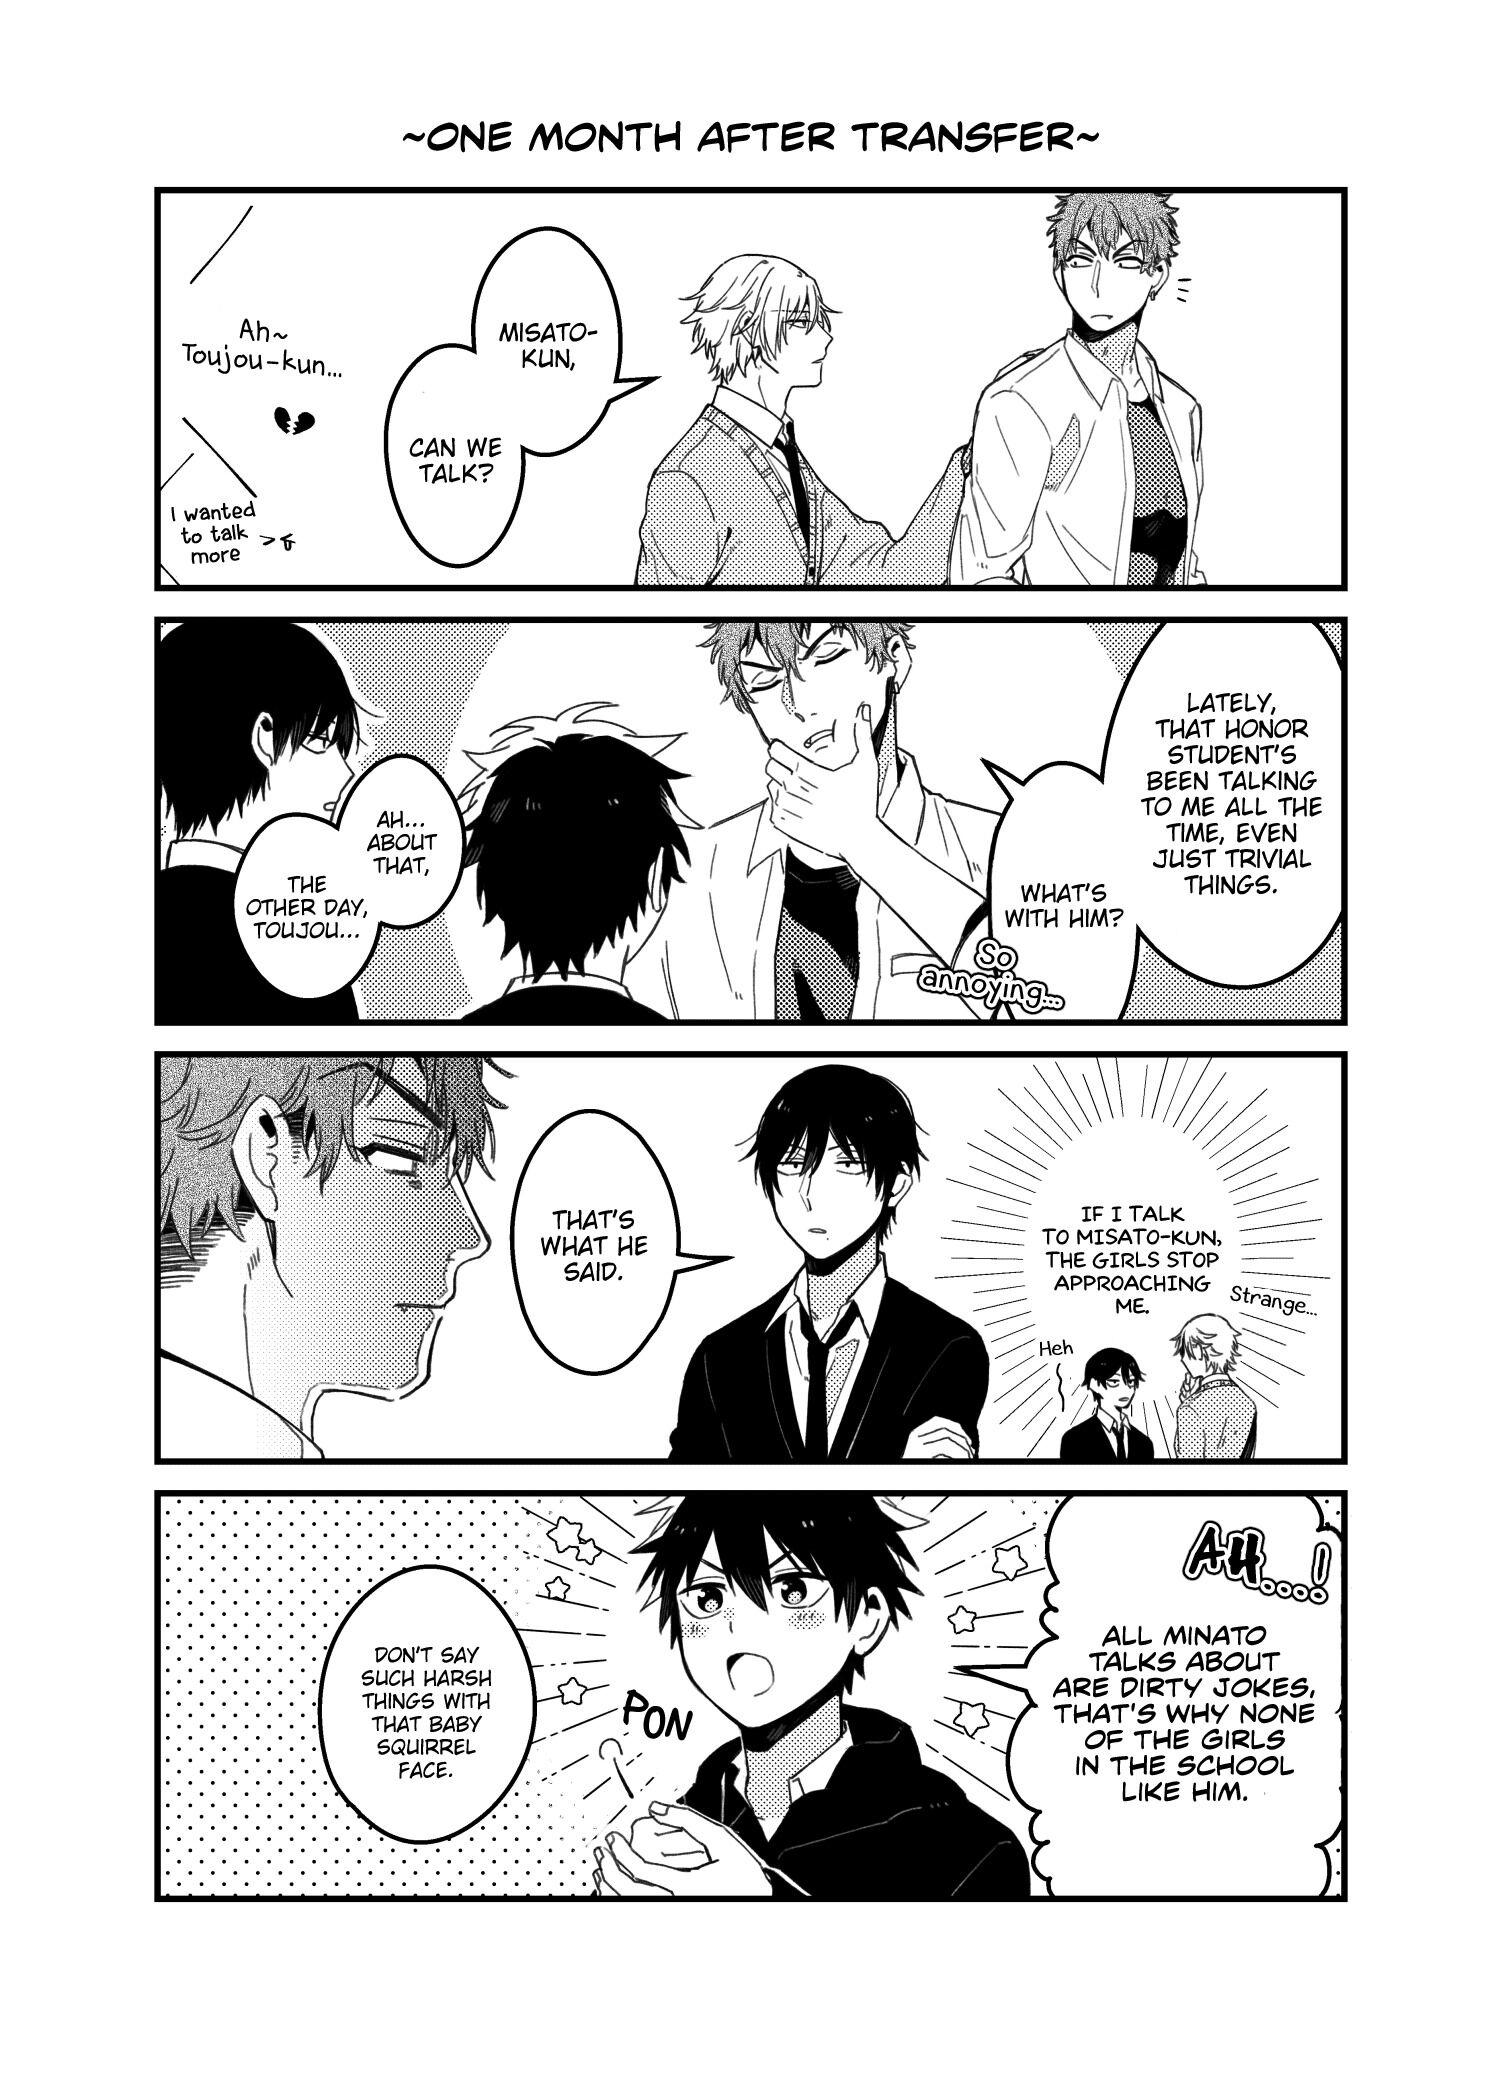 A World Where Everything Definitely Becomes Bl Vs. The Man Who Definitely Doesn't Want To Be In A Bl Volume 2 Chapter 35.6 : Twitter Comics page 7 - Mangakakalots.com